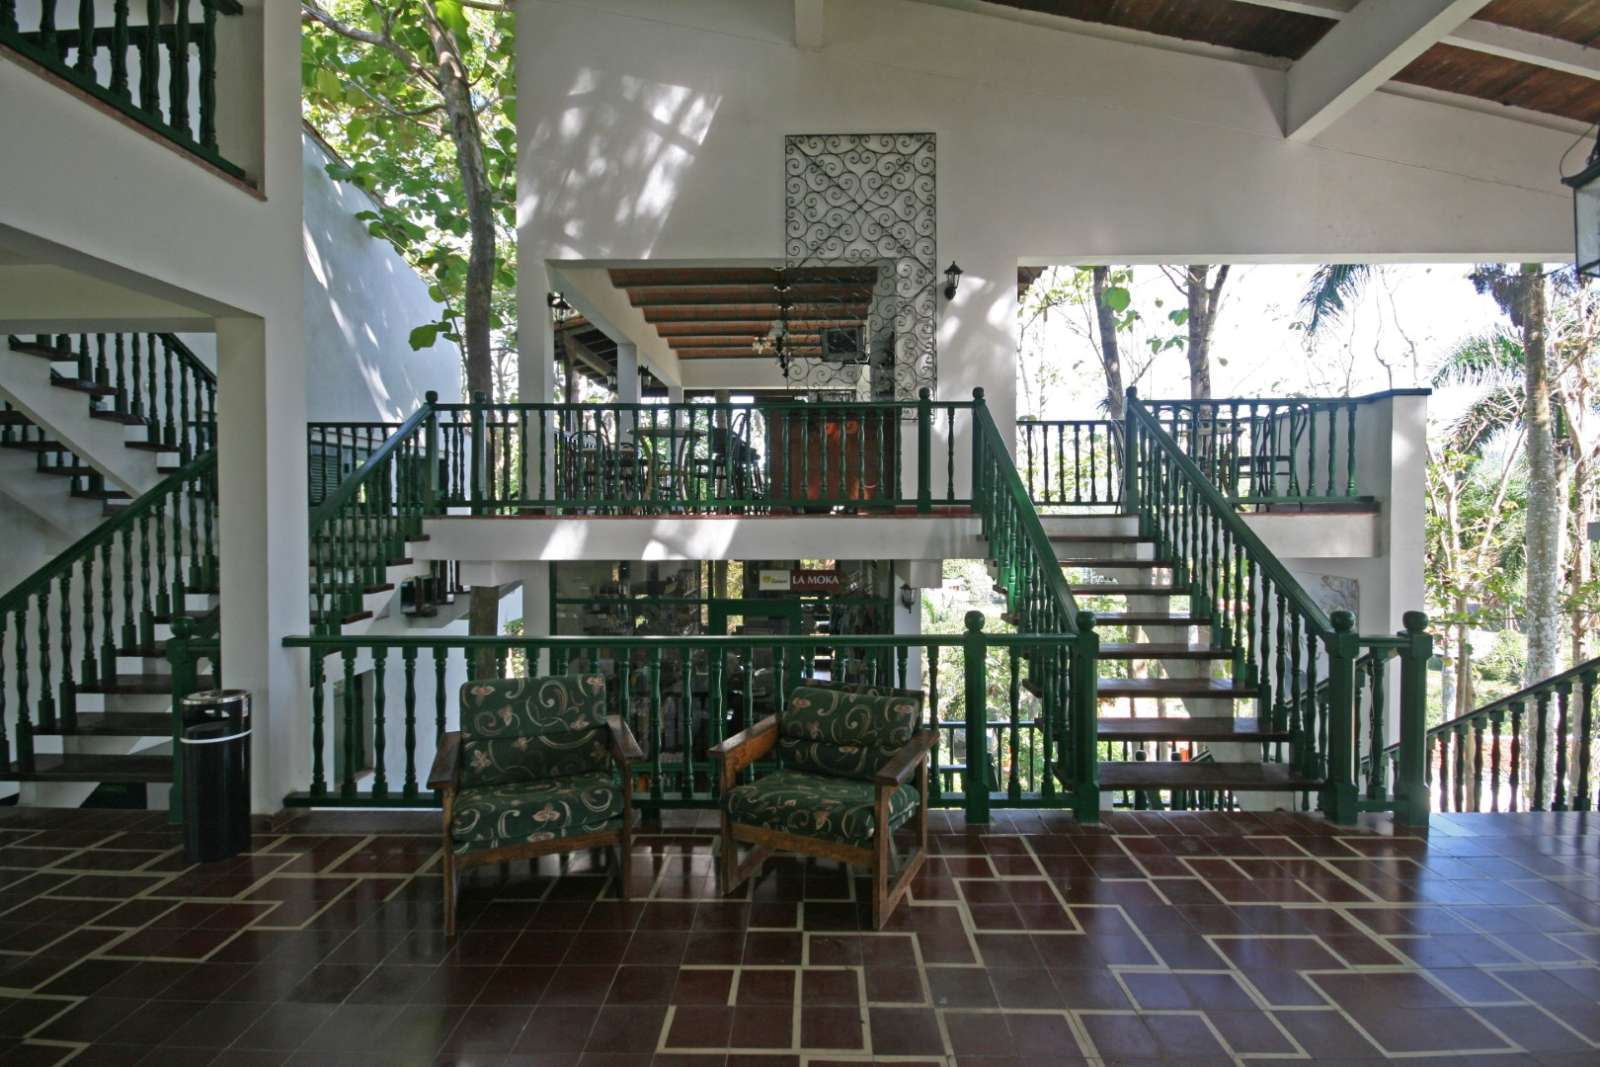 Lobby and reception area at La Moka hotel in Las Terrazas, Cuba